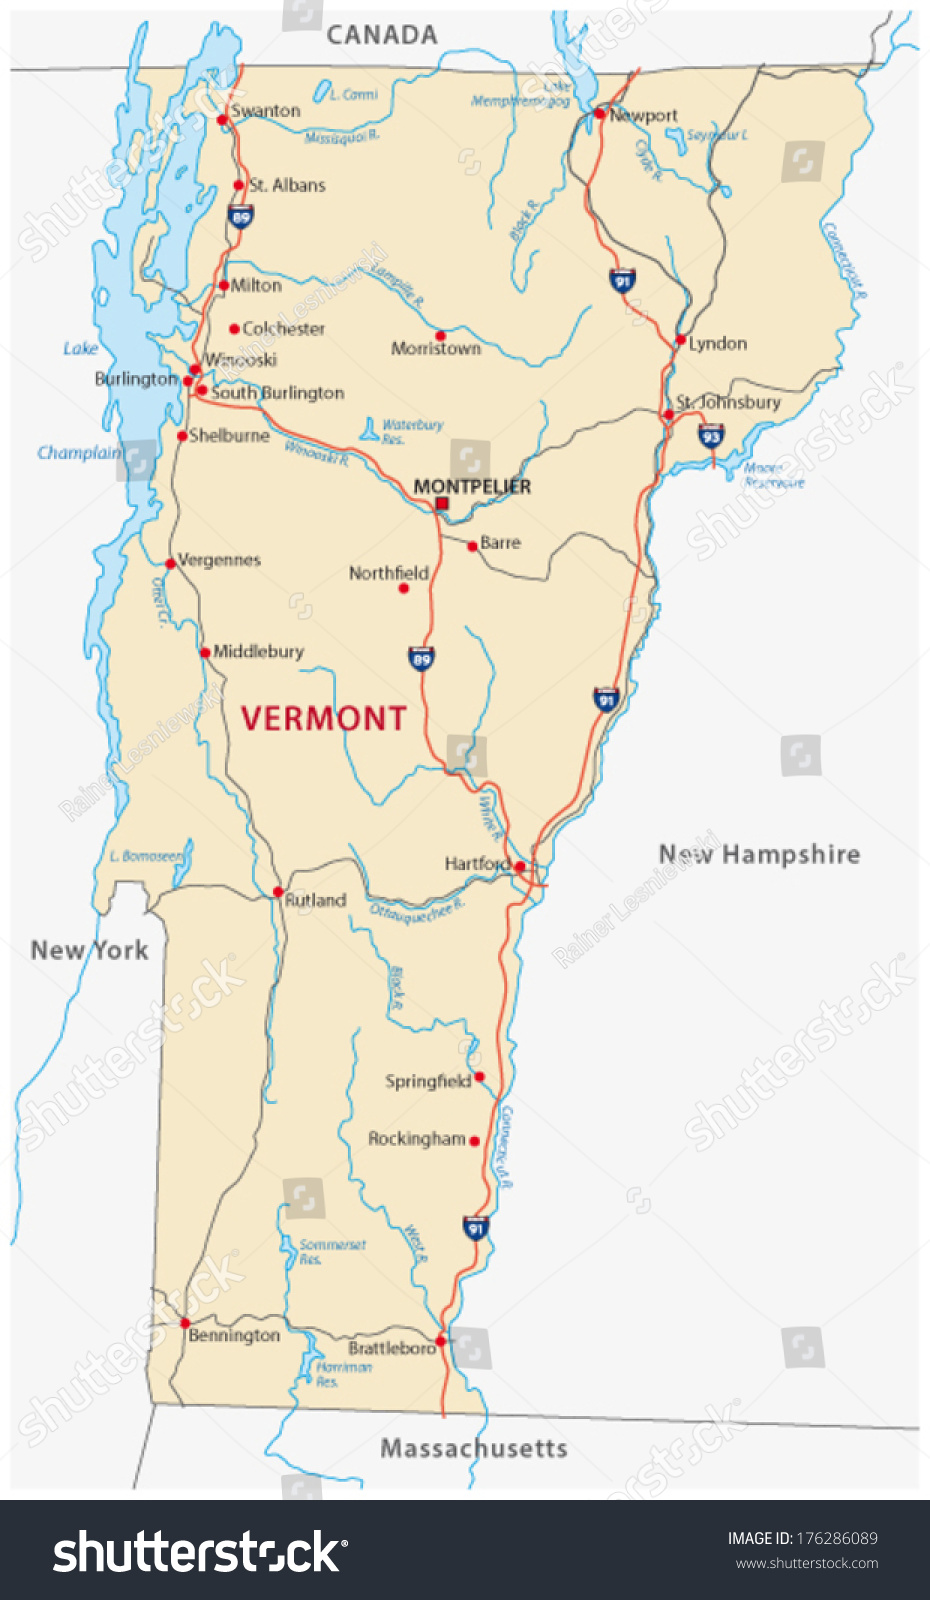 Vermont Road Map Images Road Map Of Vermont Vermont Road - Road map of vermont